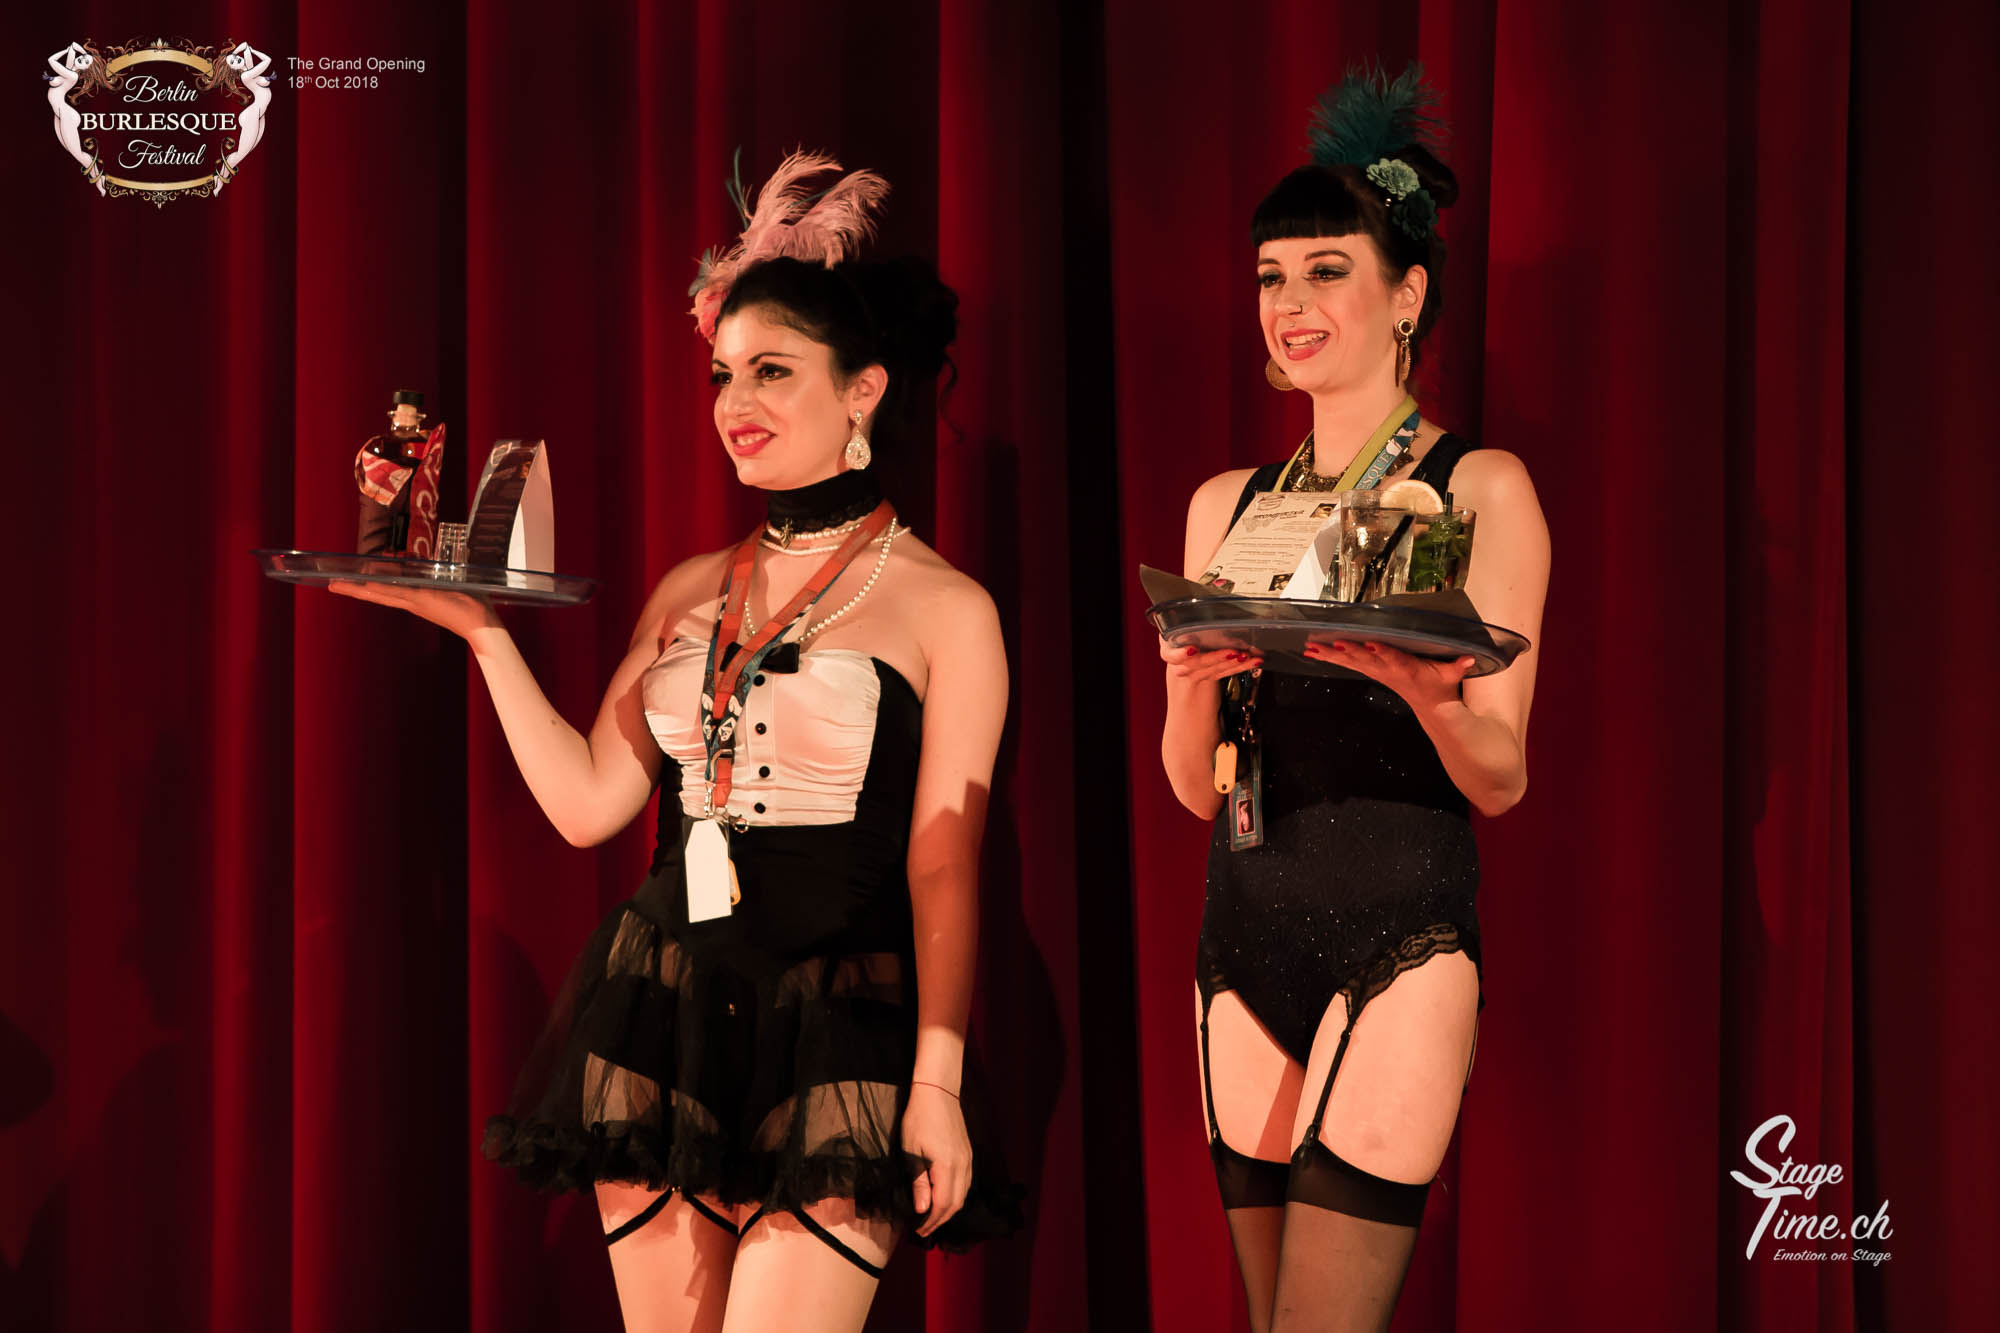 Berlin_Burlesque_Festival___The_Grand_Op